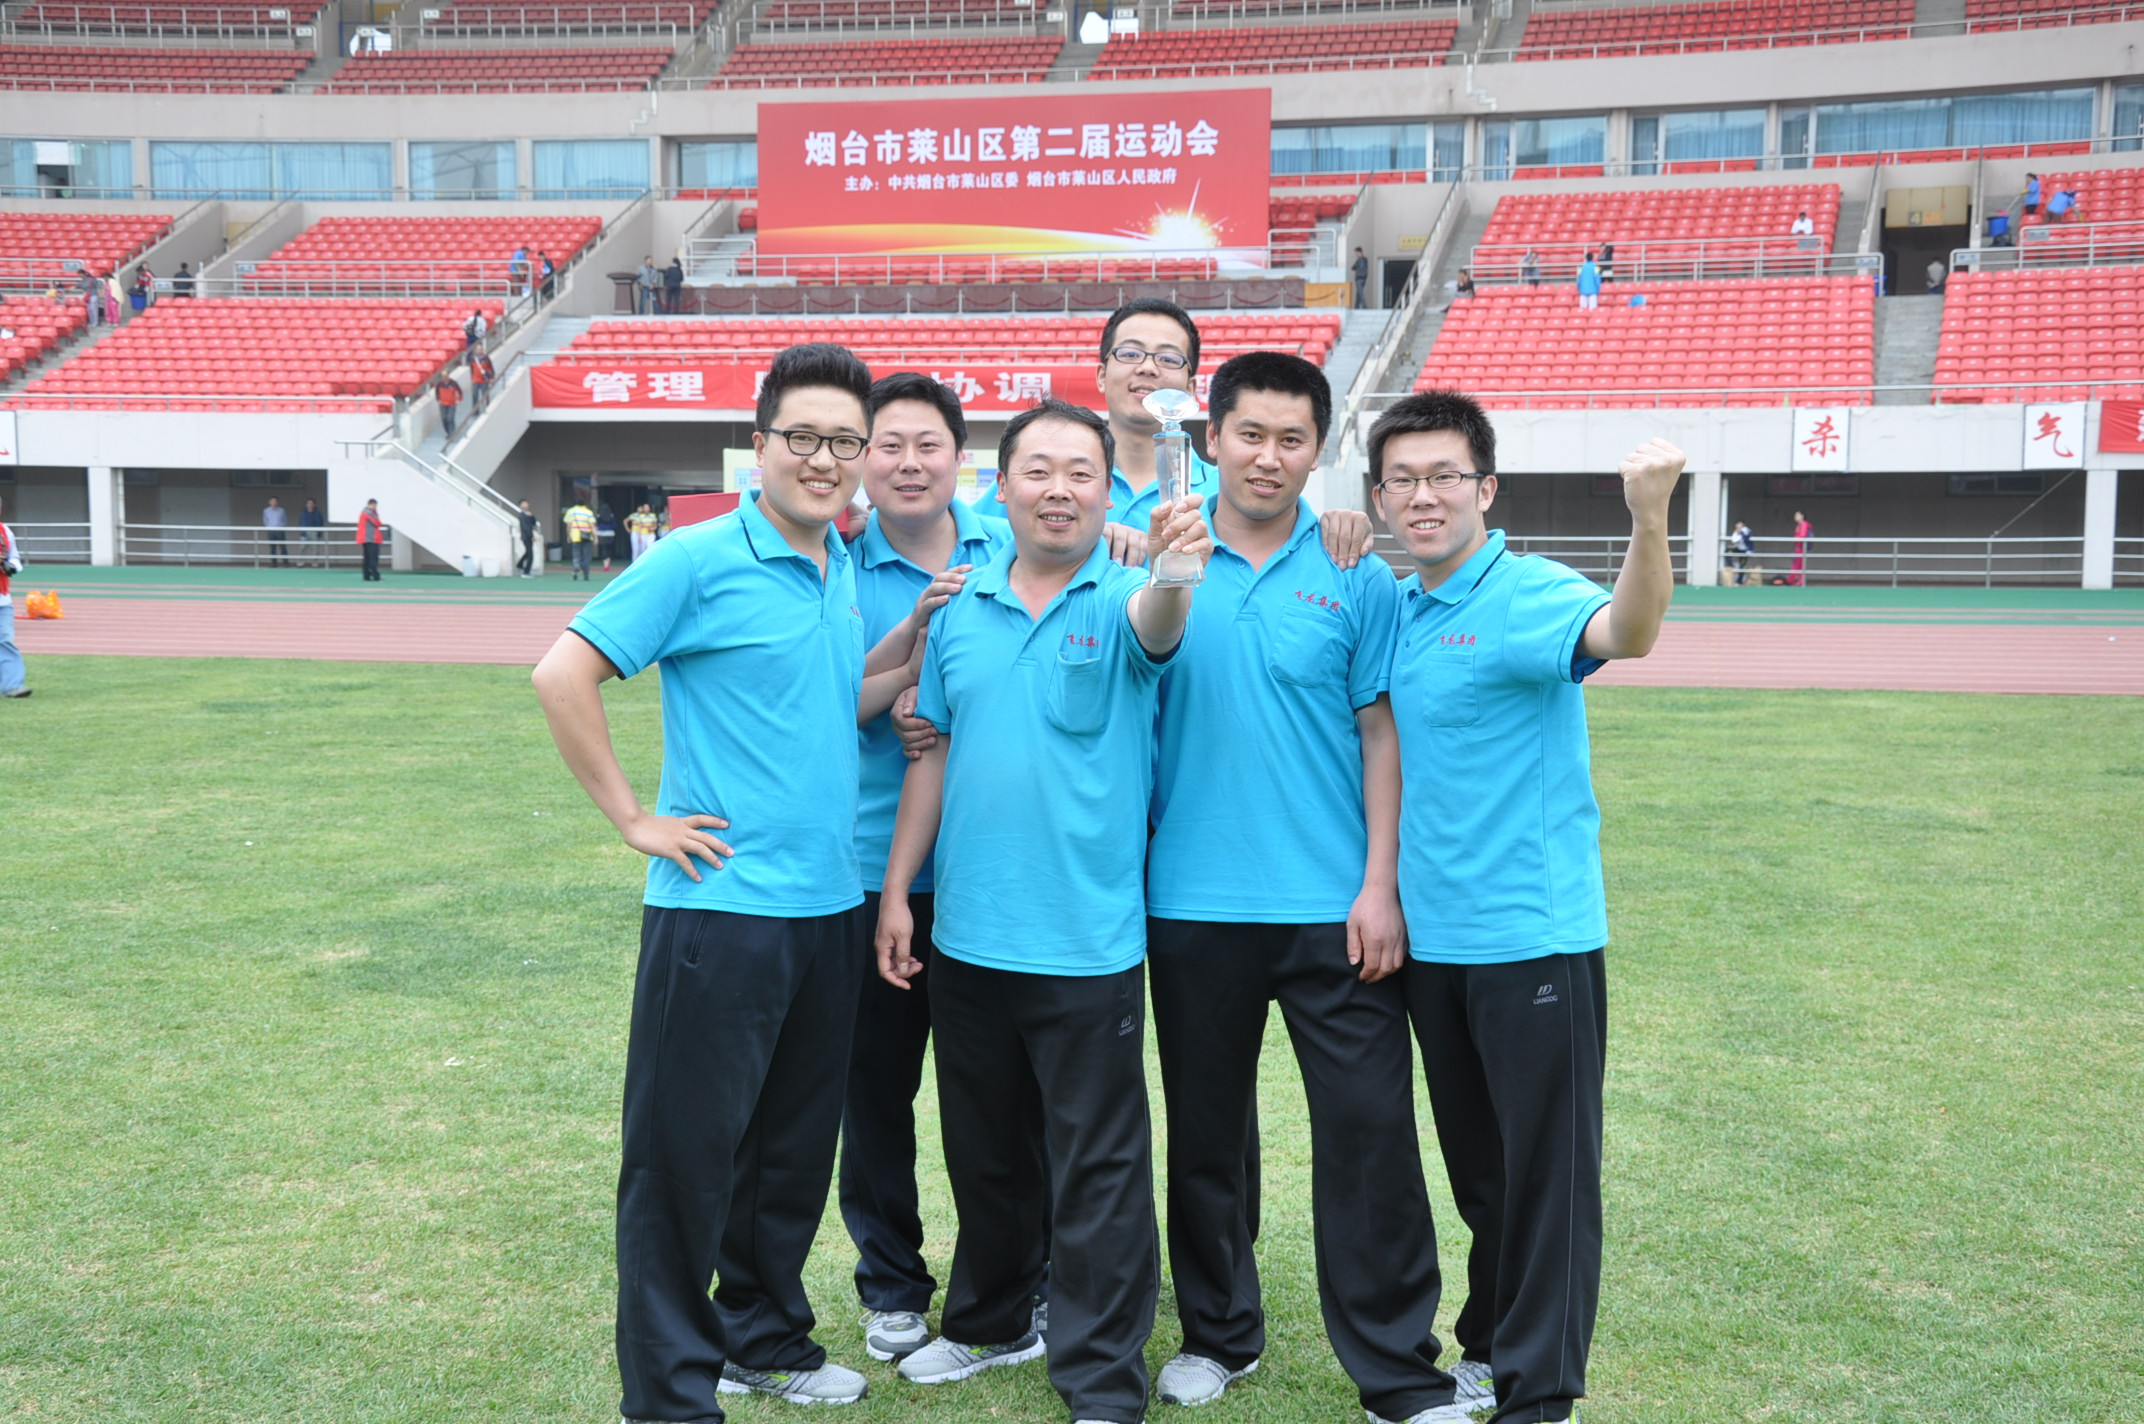 April 2013, Feilong Group participates in the 2nd Sports Meeting of Laishan District, Yantai.